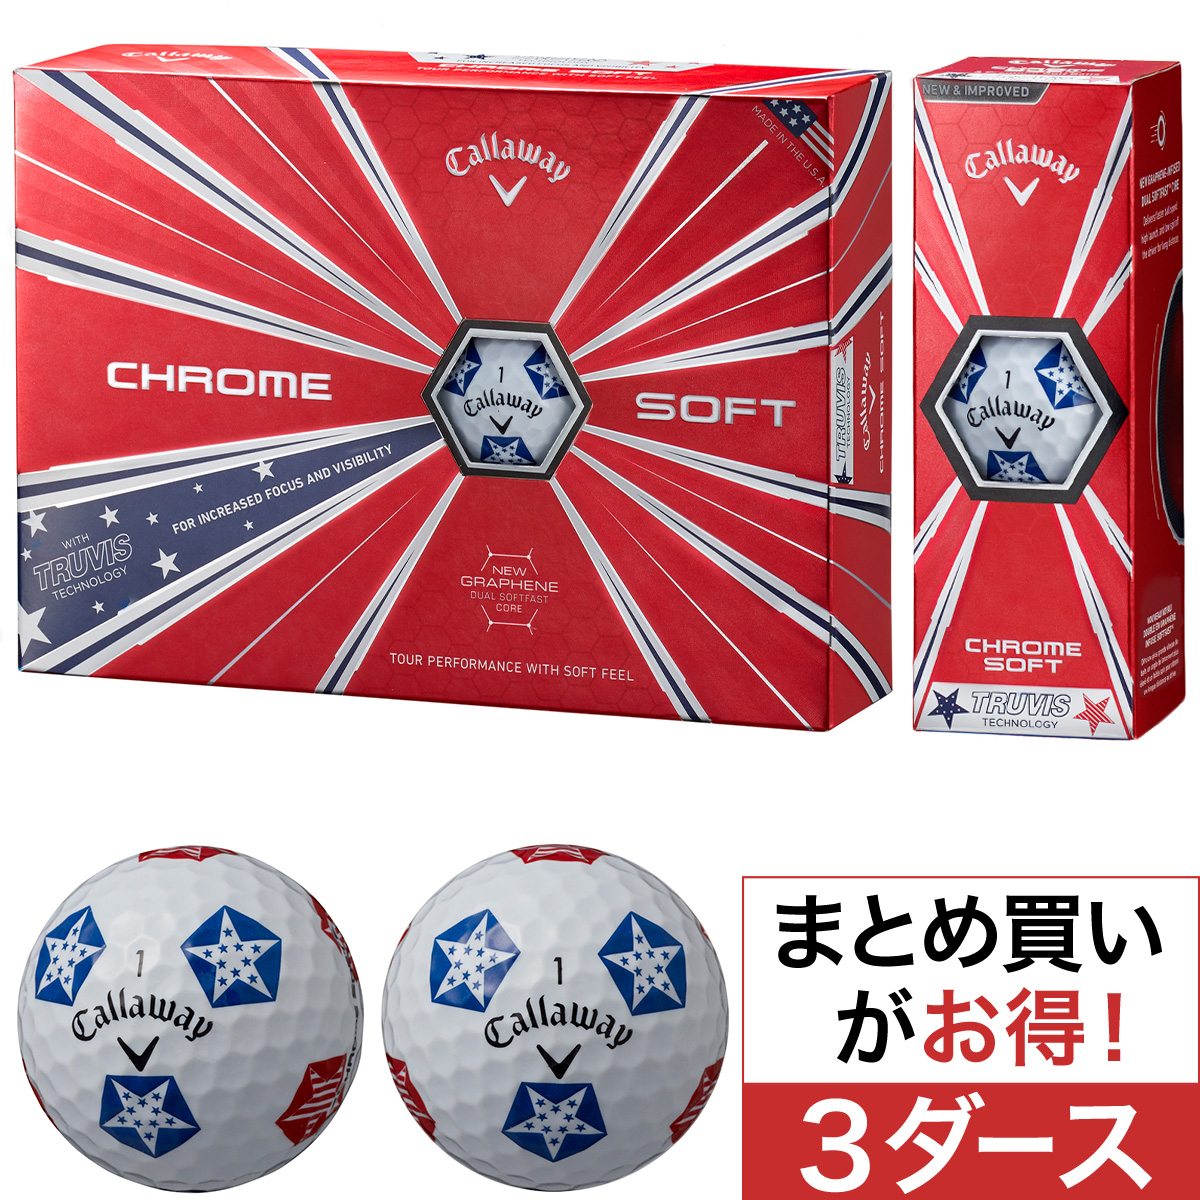 CHROME SOFT TRUVIS STARS/STRIPES ボール 3ダースセット